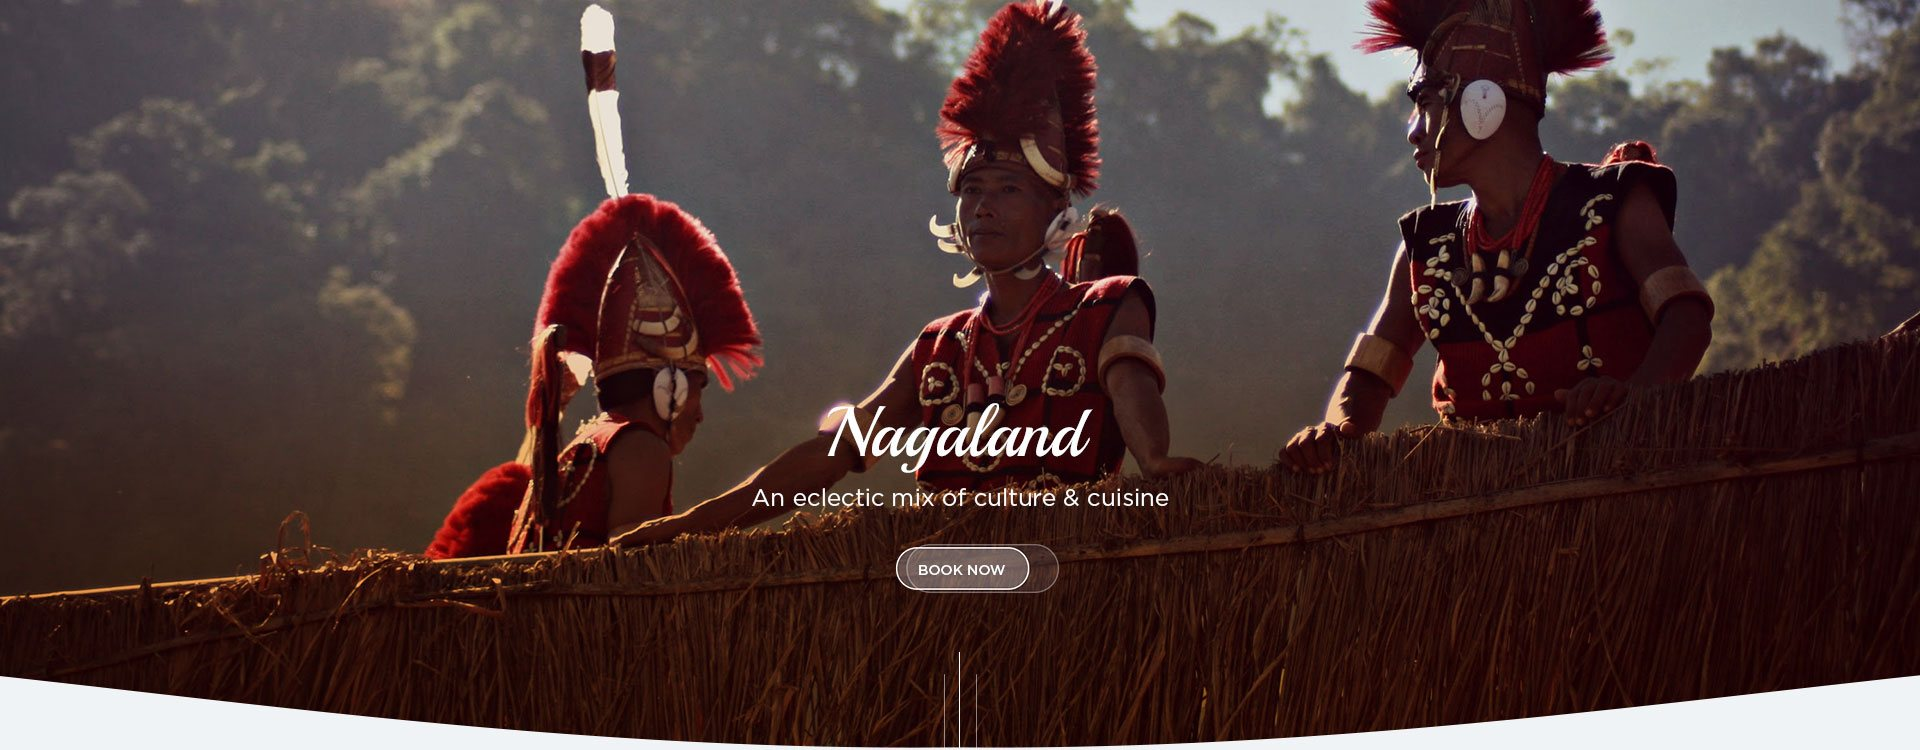 Nagaland Tourism - Eastern Meadows Tour